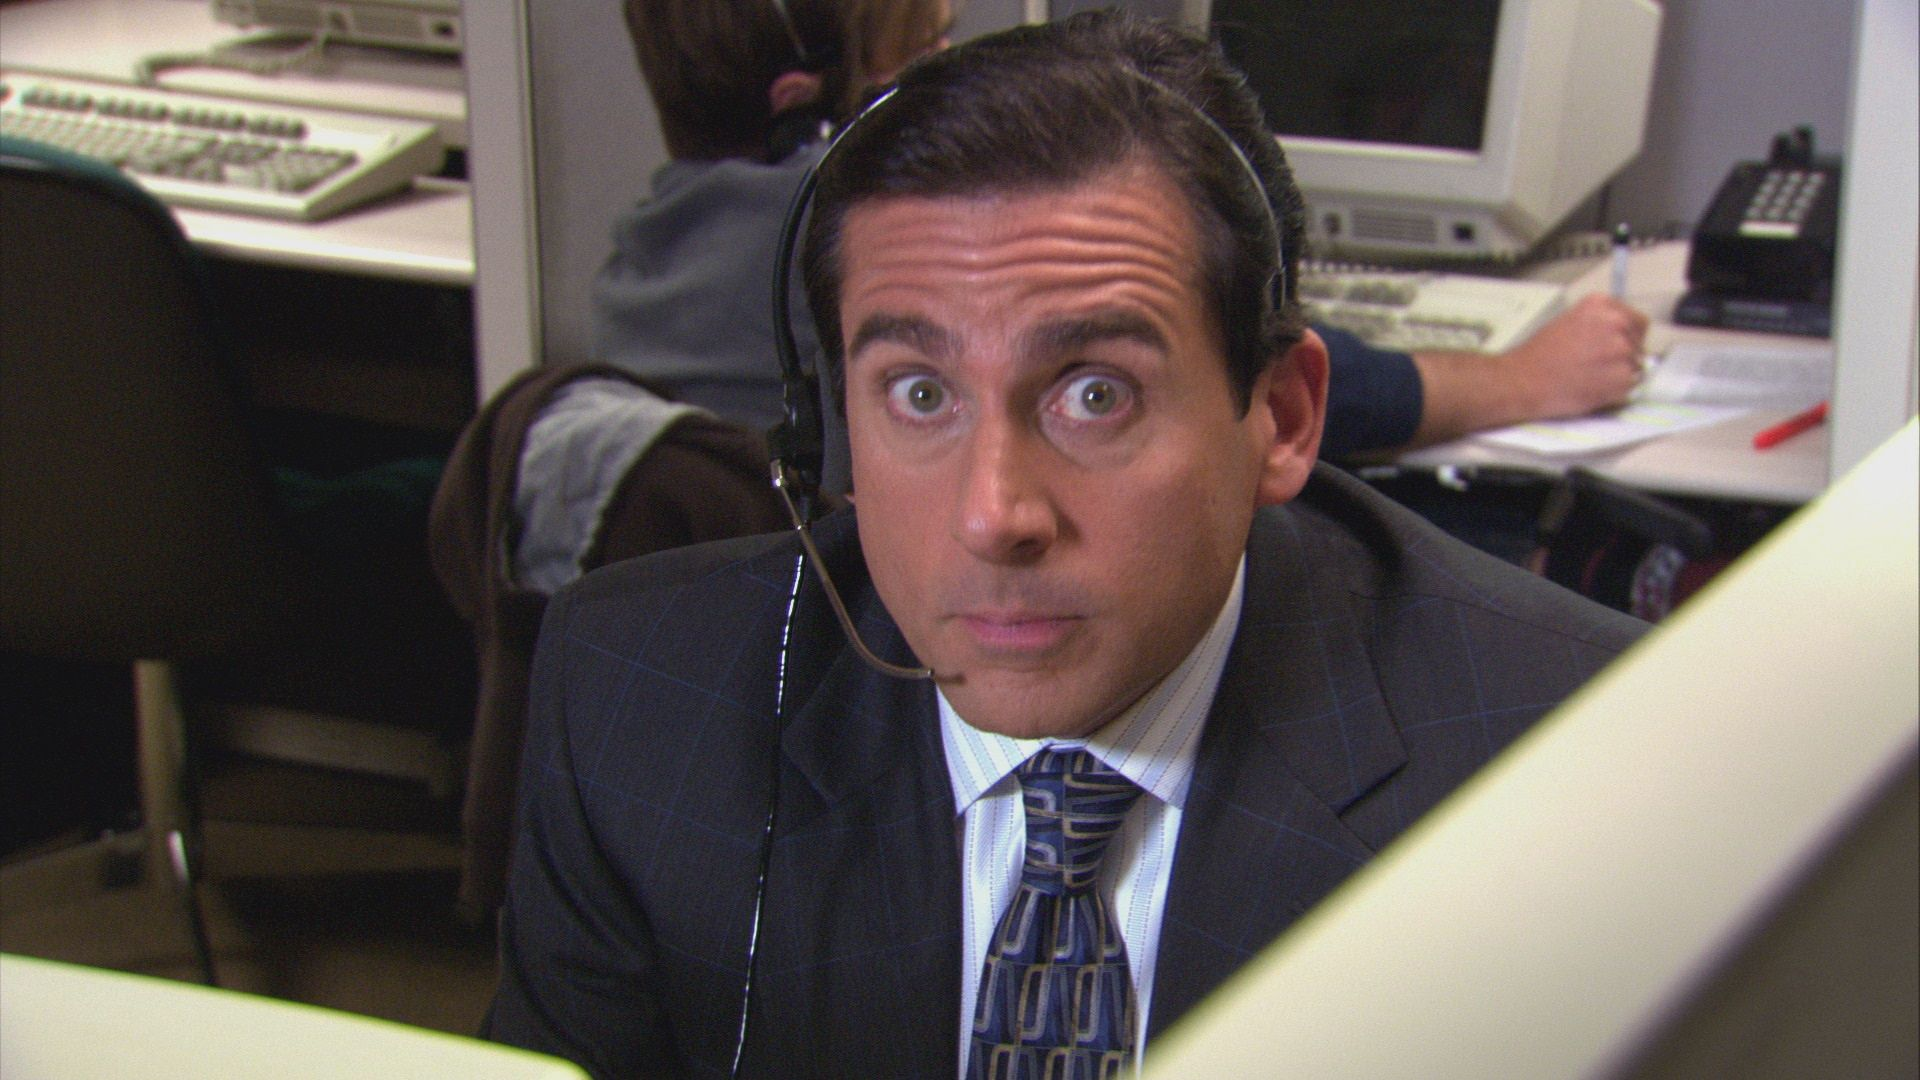 Michael Scott The Office: 9 Legendary Deleted Scenes we Will Never Get To See